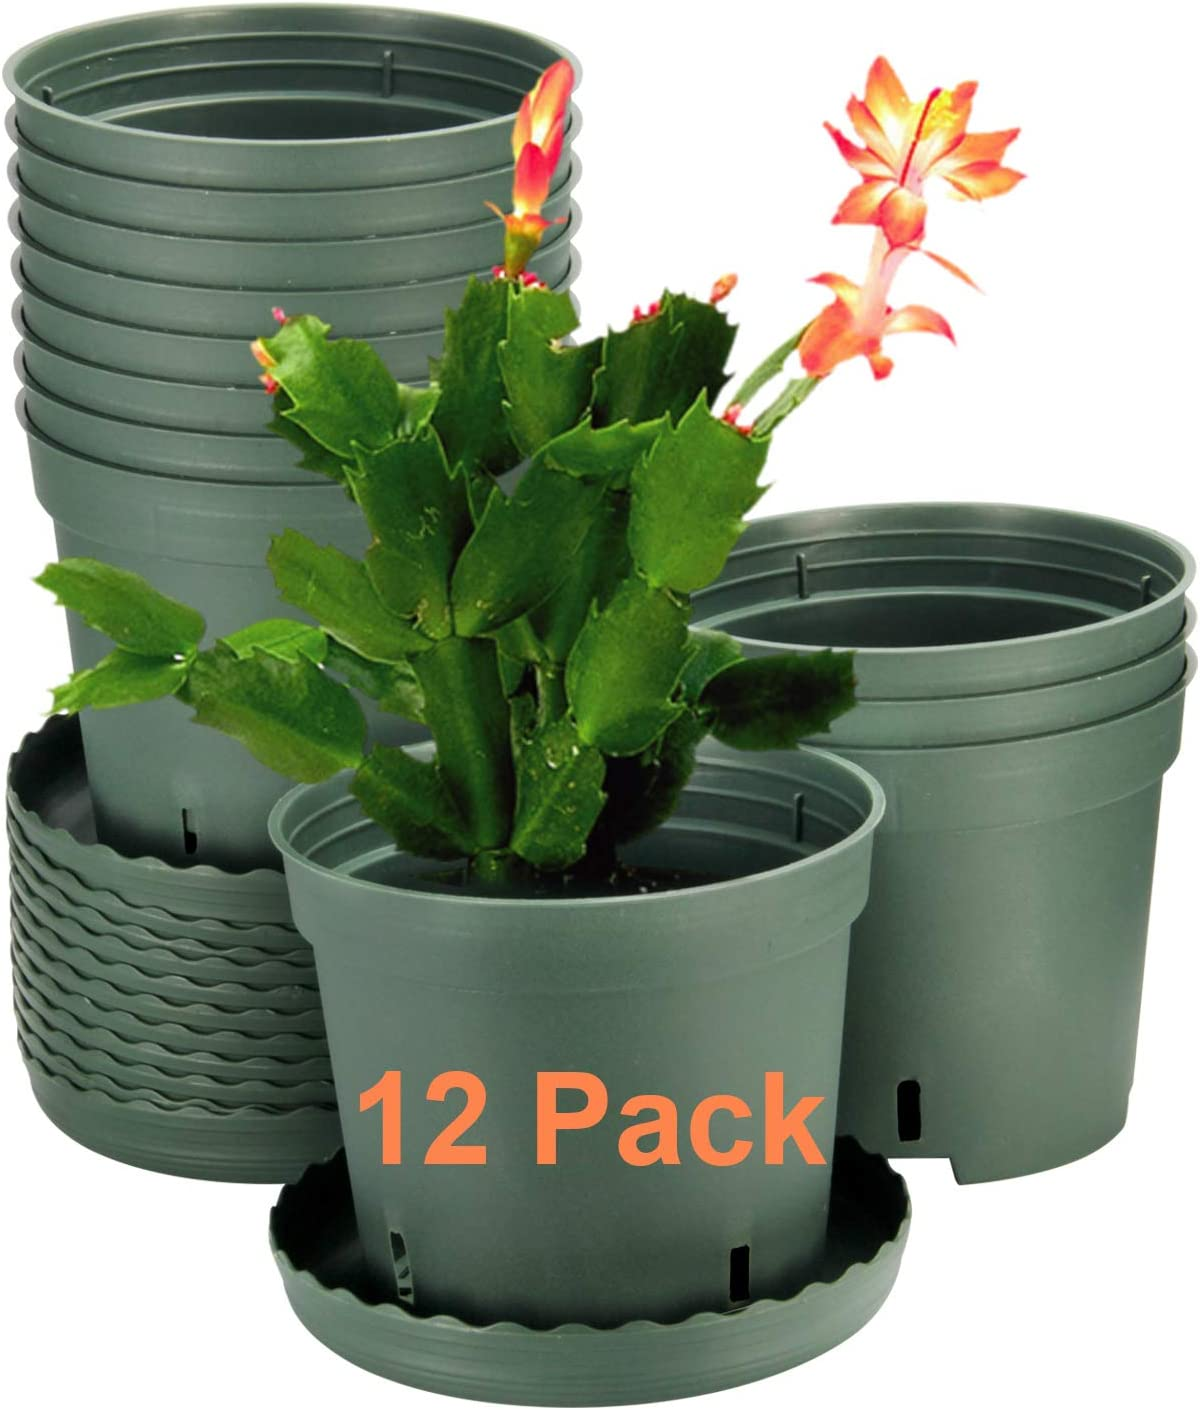 Plants not Included 12 Pack Plant Pots ZOUTOG 6 inch Plastic Pots for Plants with Drainage Hole